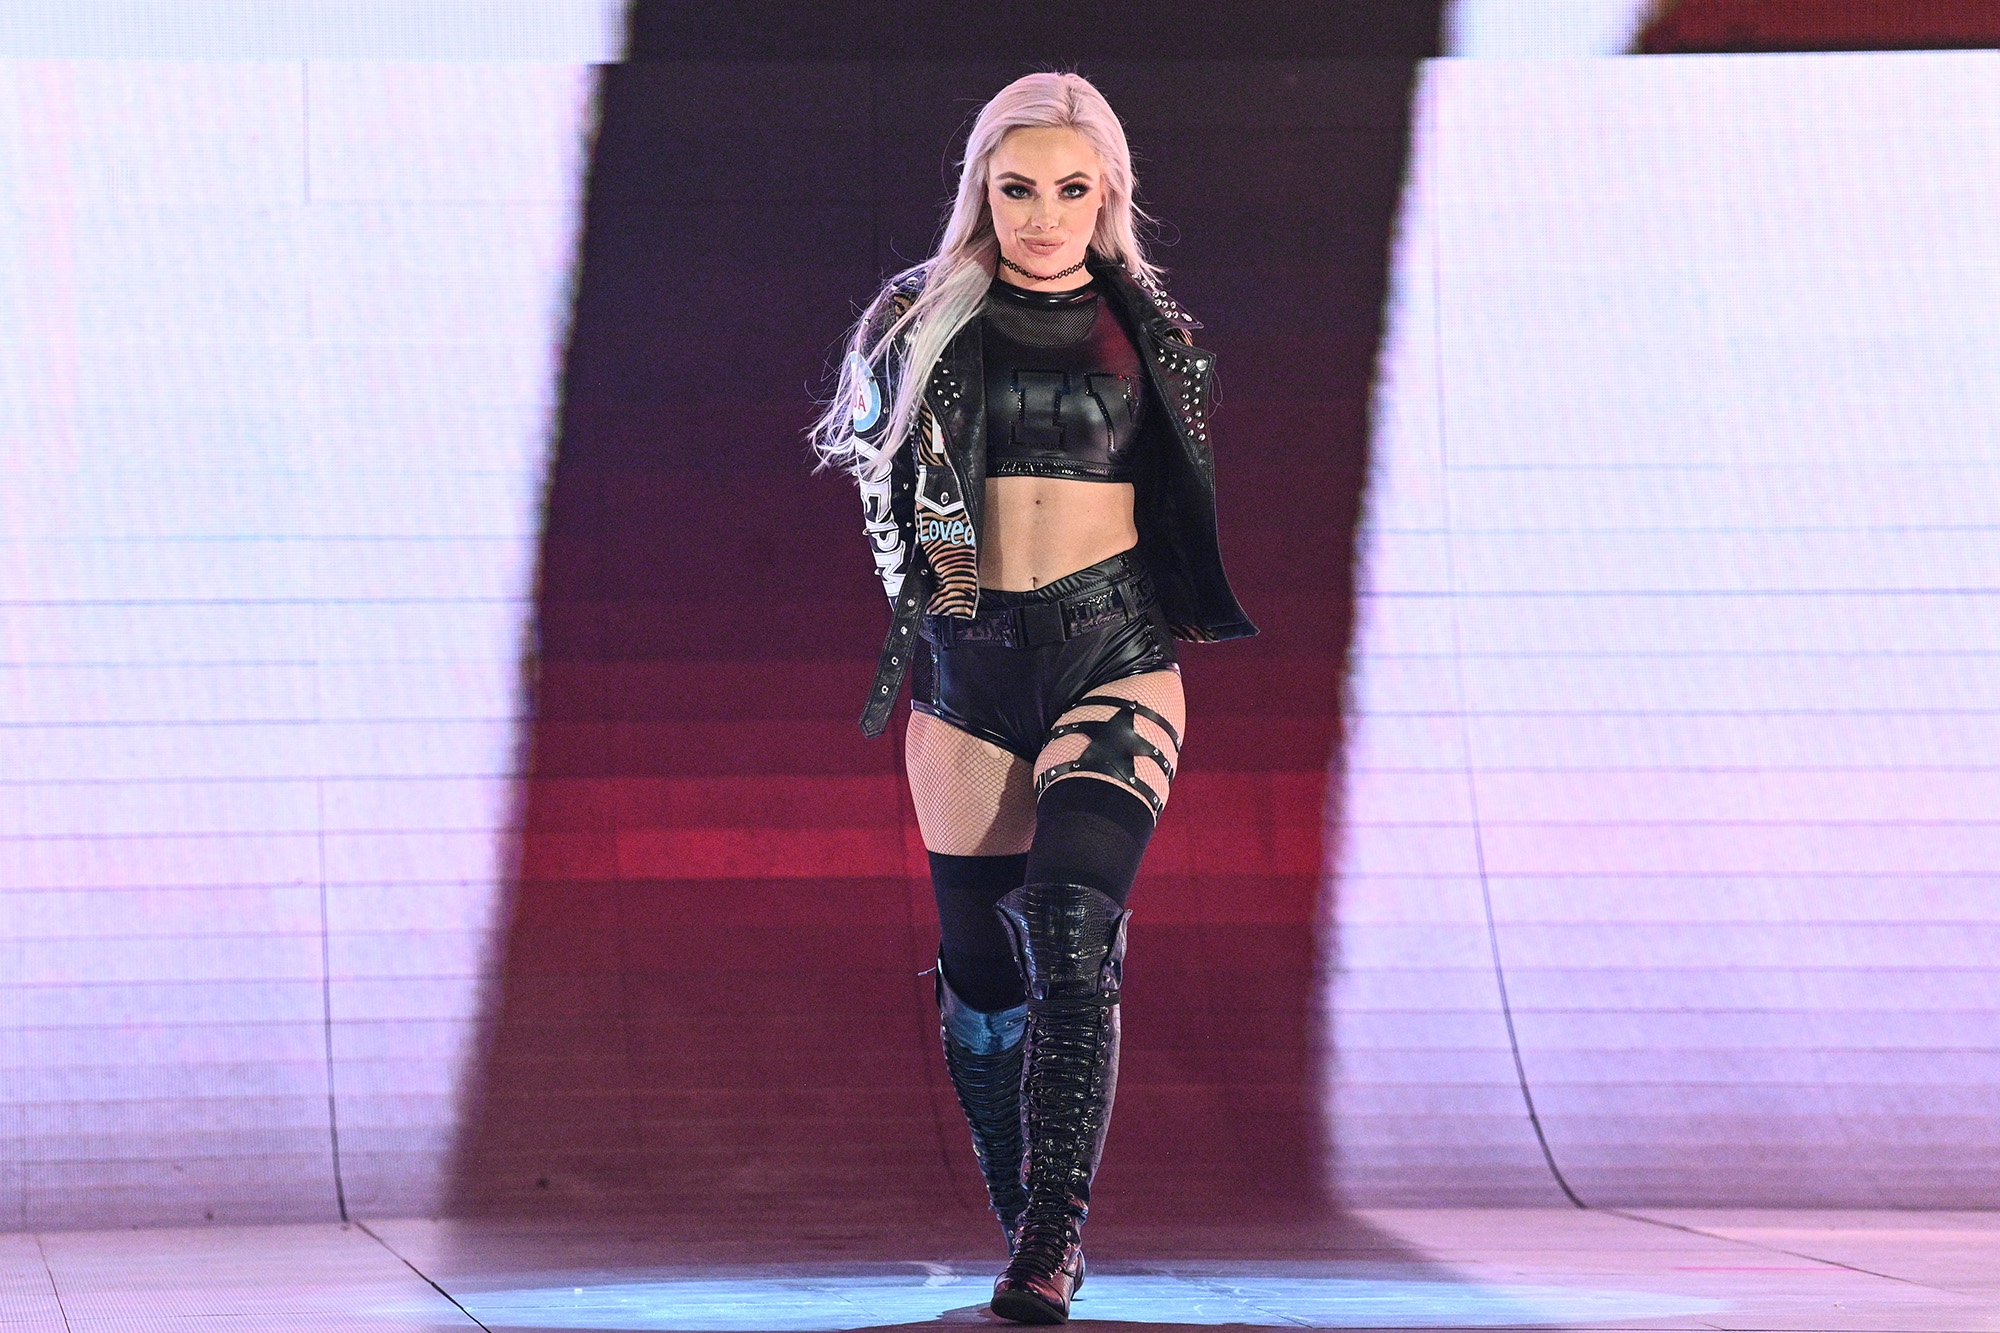 WWE Elimination Chamber: Liv Morgan on her big opportunity